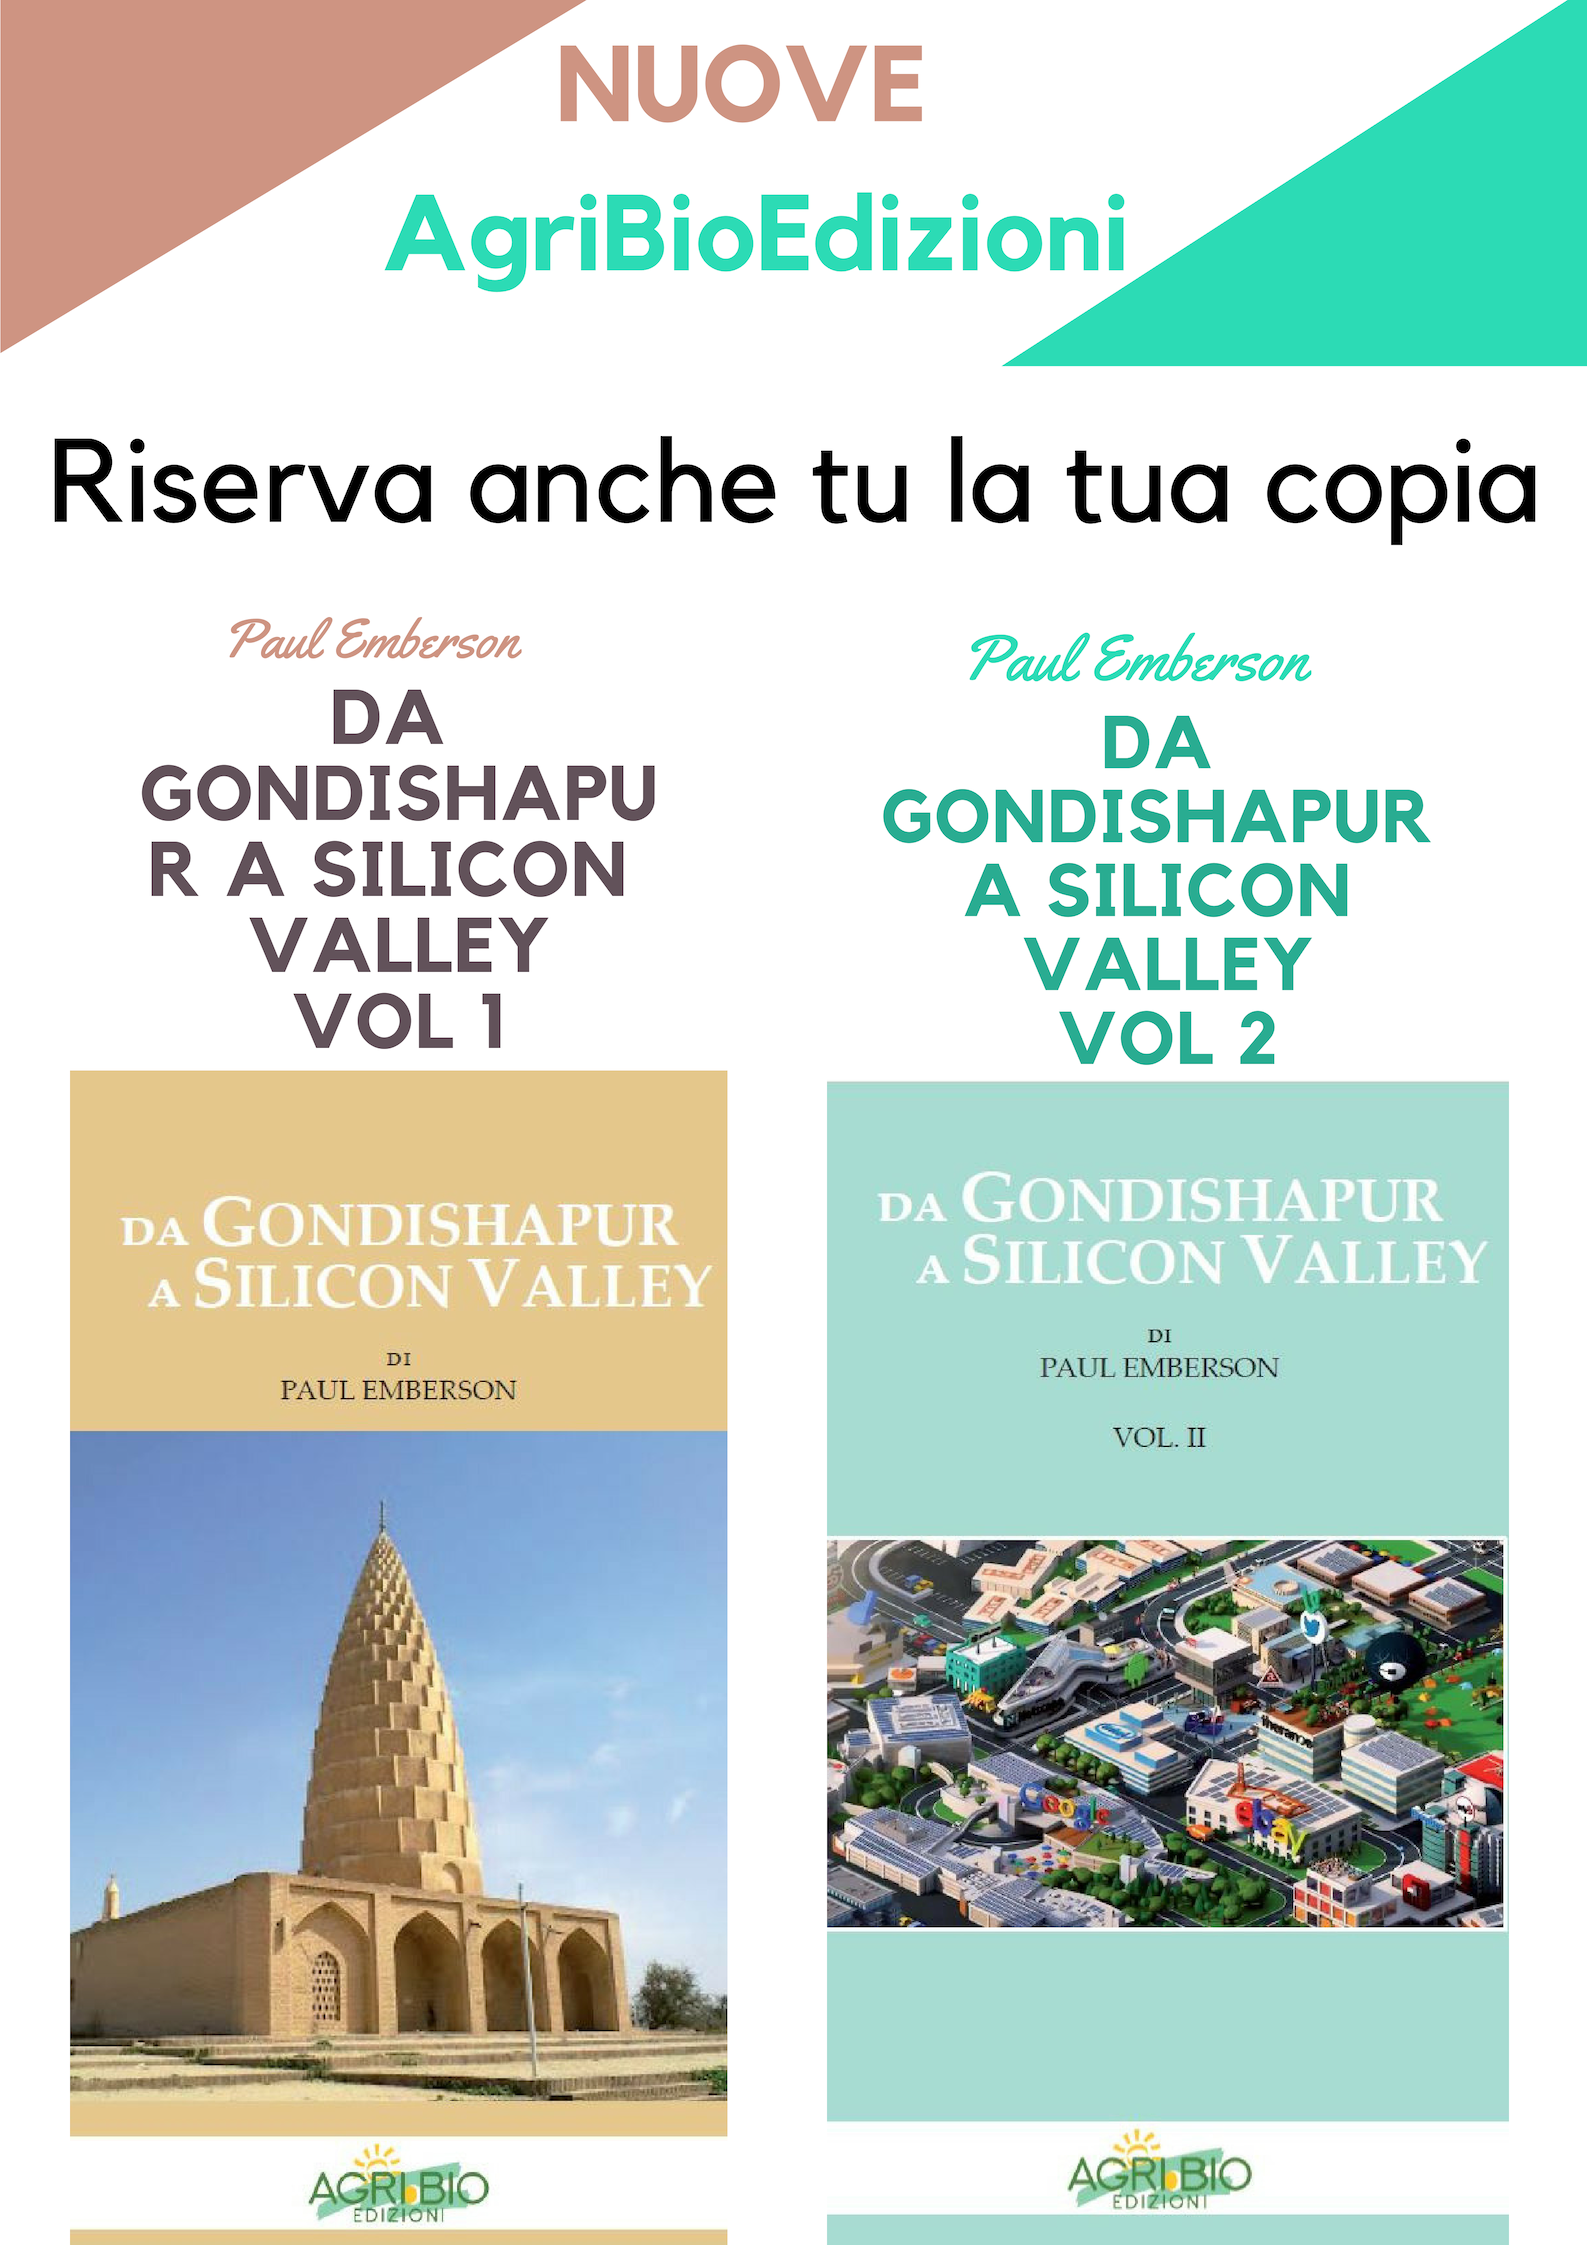 Da Gondishapur a Silicon Valley